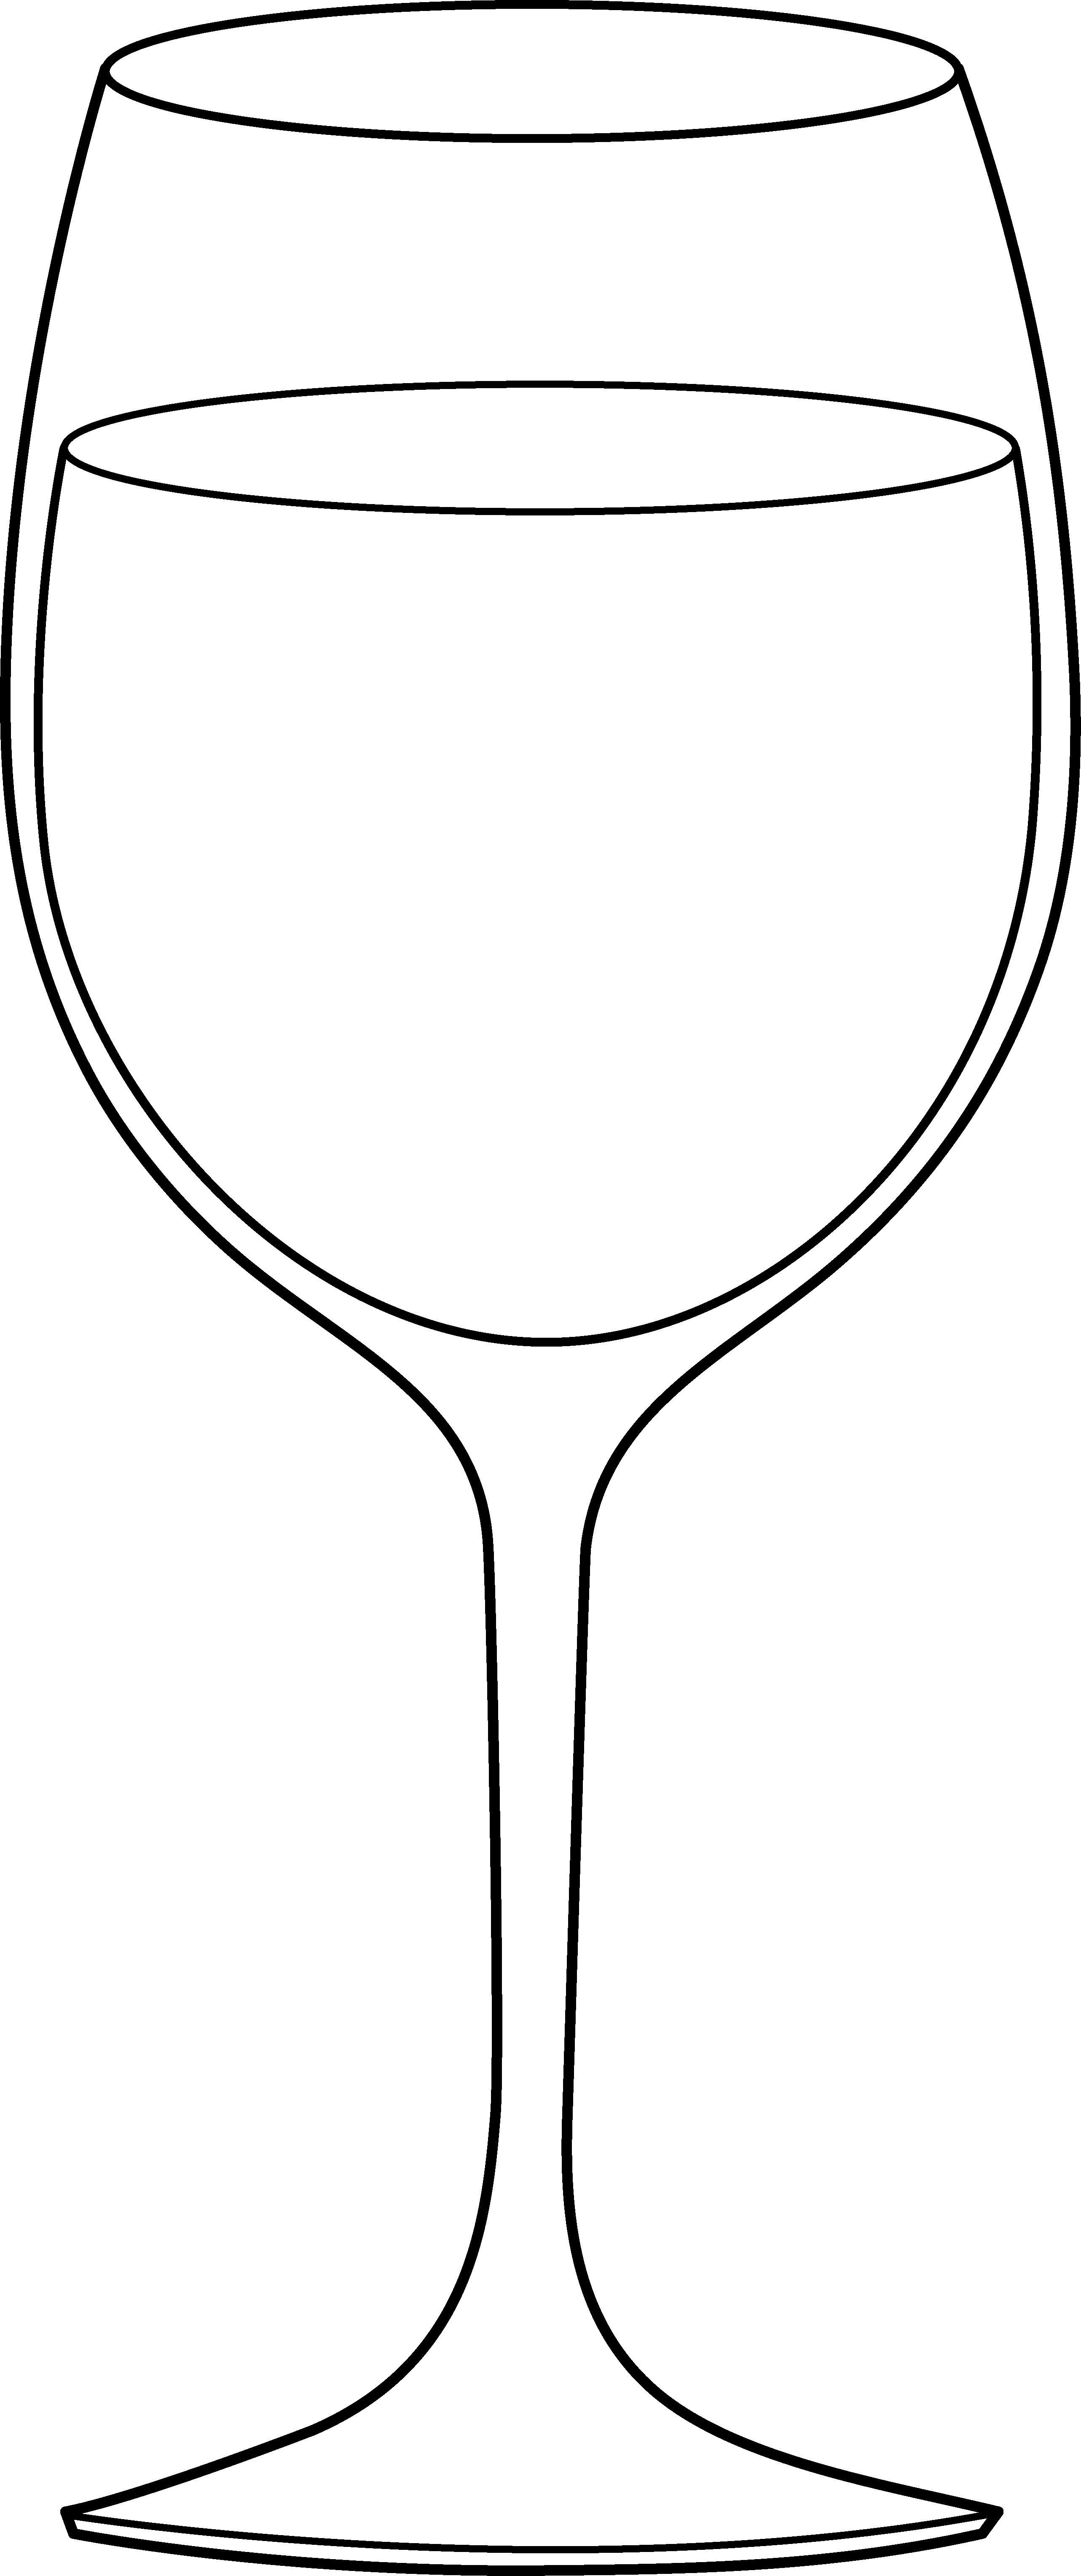 Art and Wine Clip Art.